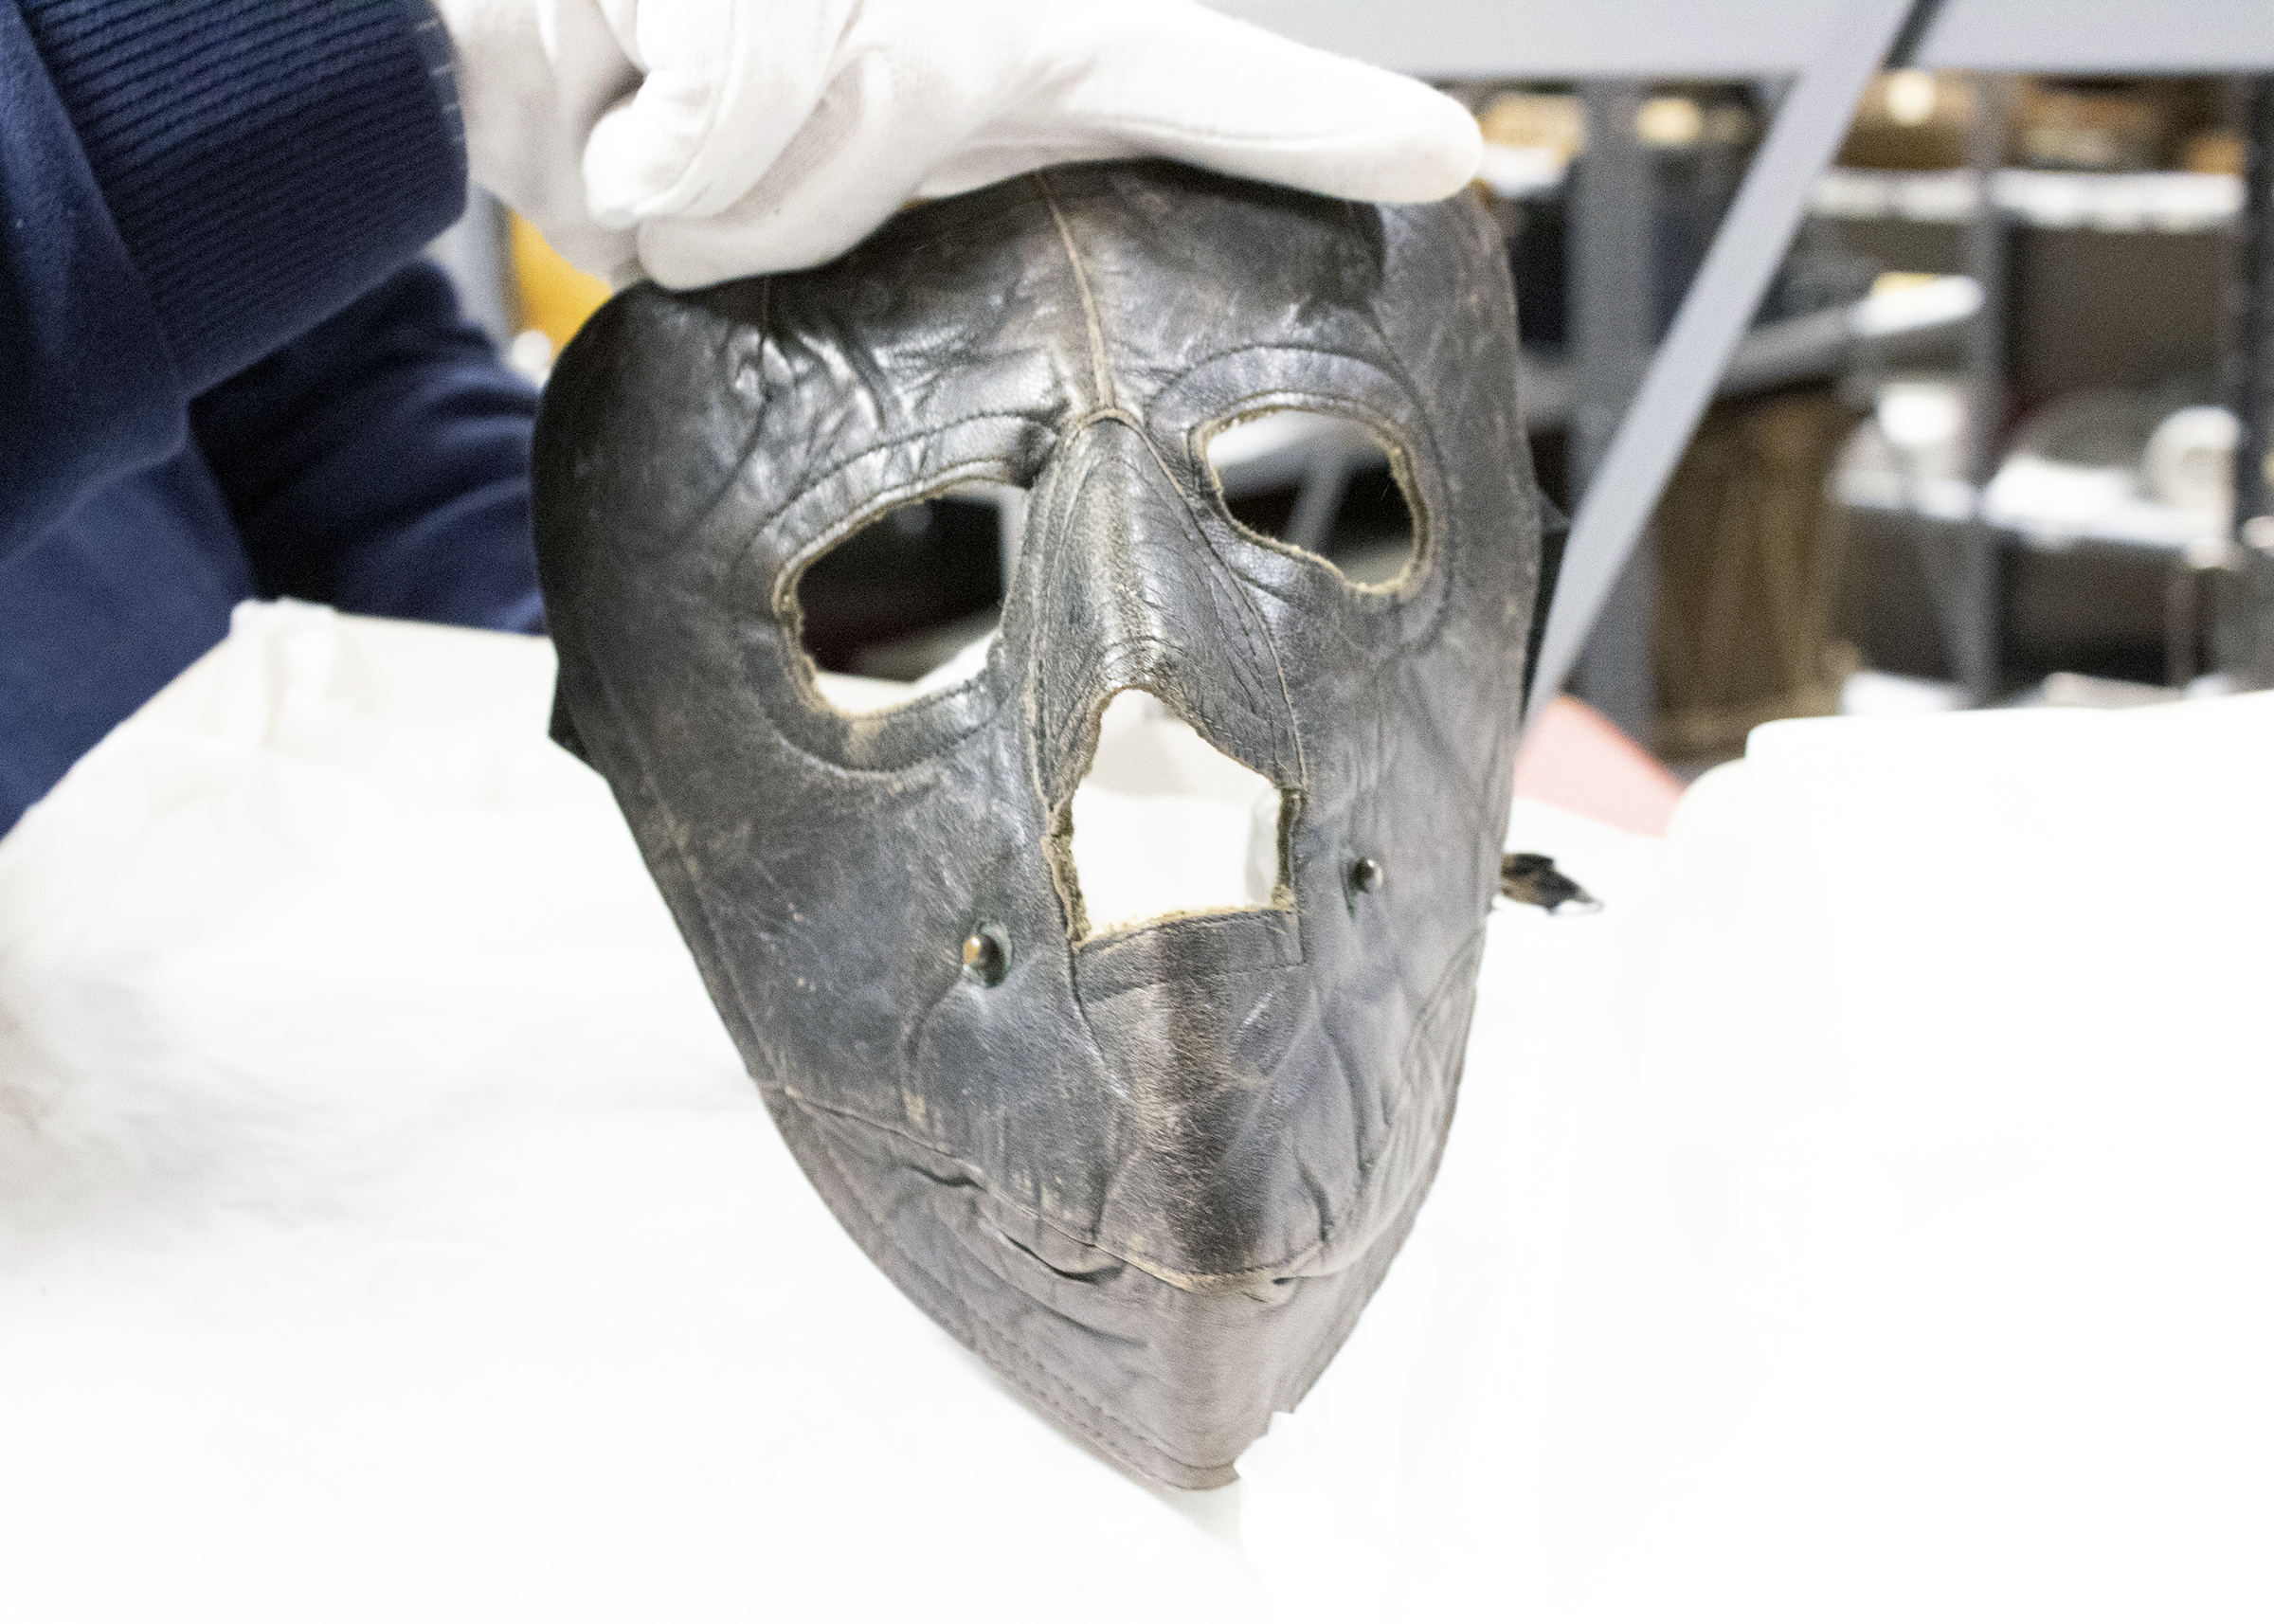 A close up photo of a mask worn by and early AdAmAn Club member to protect his face from the cold. This piece is part of a collection at the Colorado Springs Pioneers Museum.